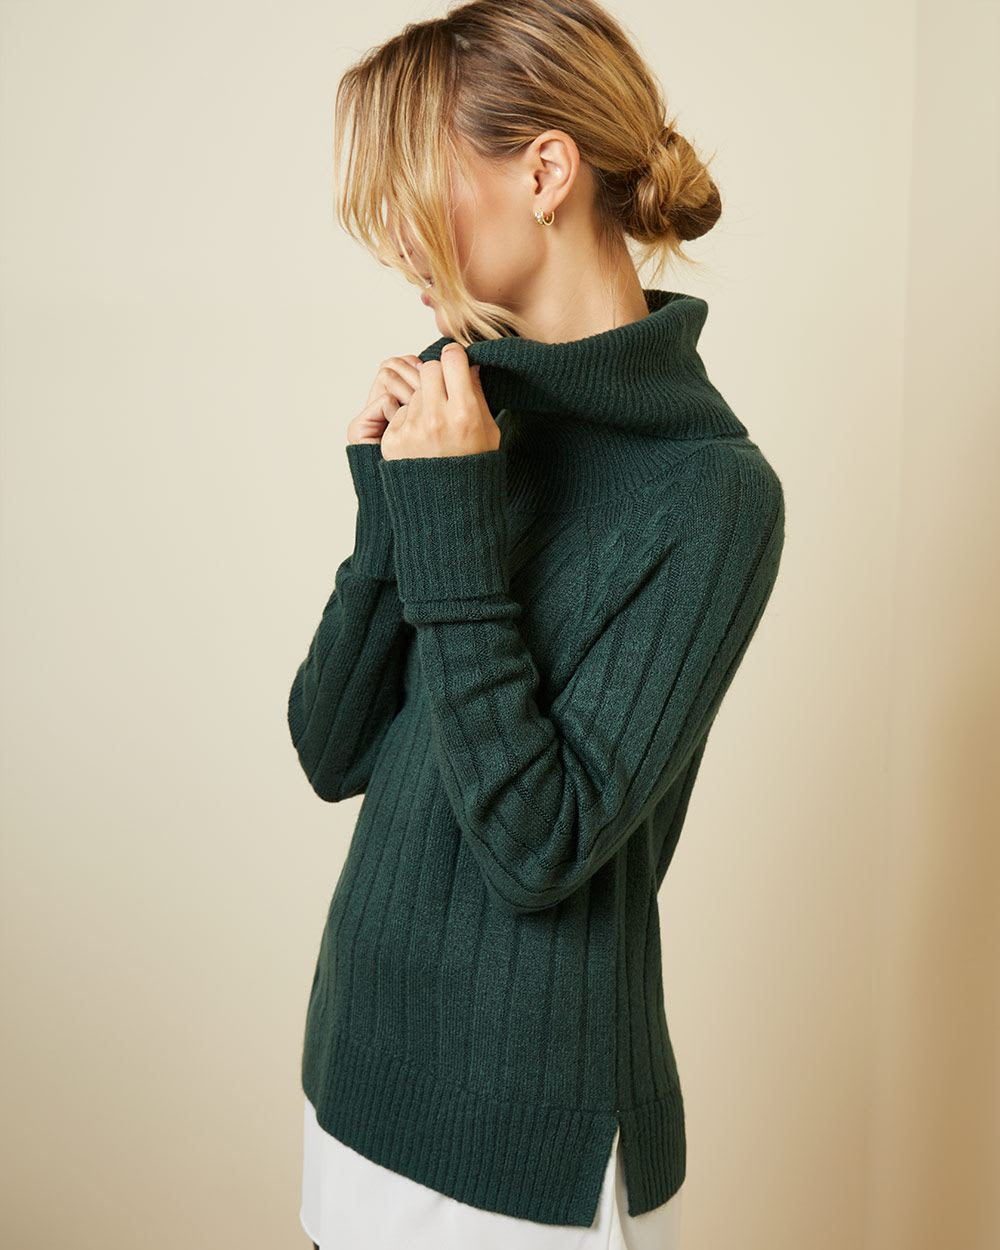 C&G Mixed media cowl-neck tunic sweater